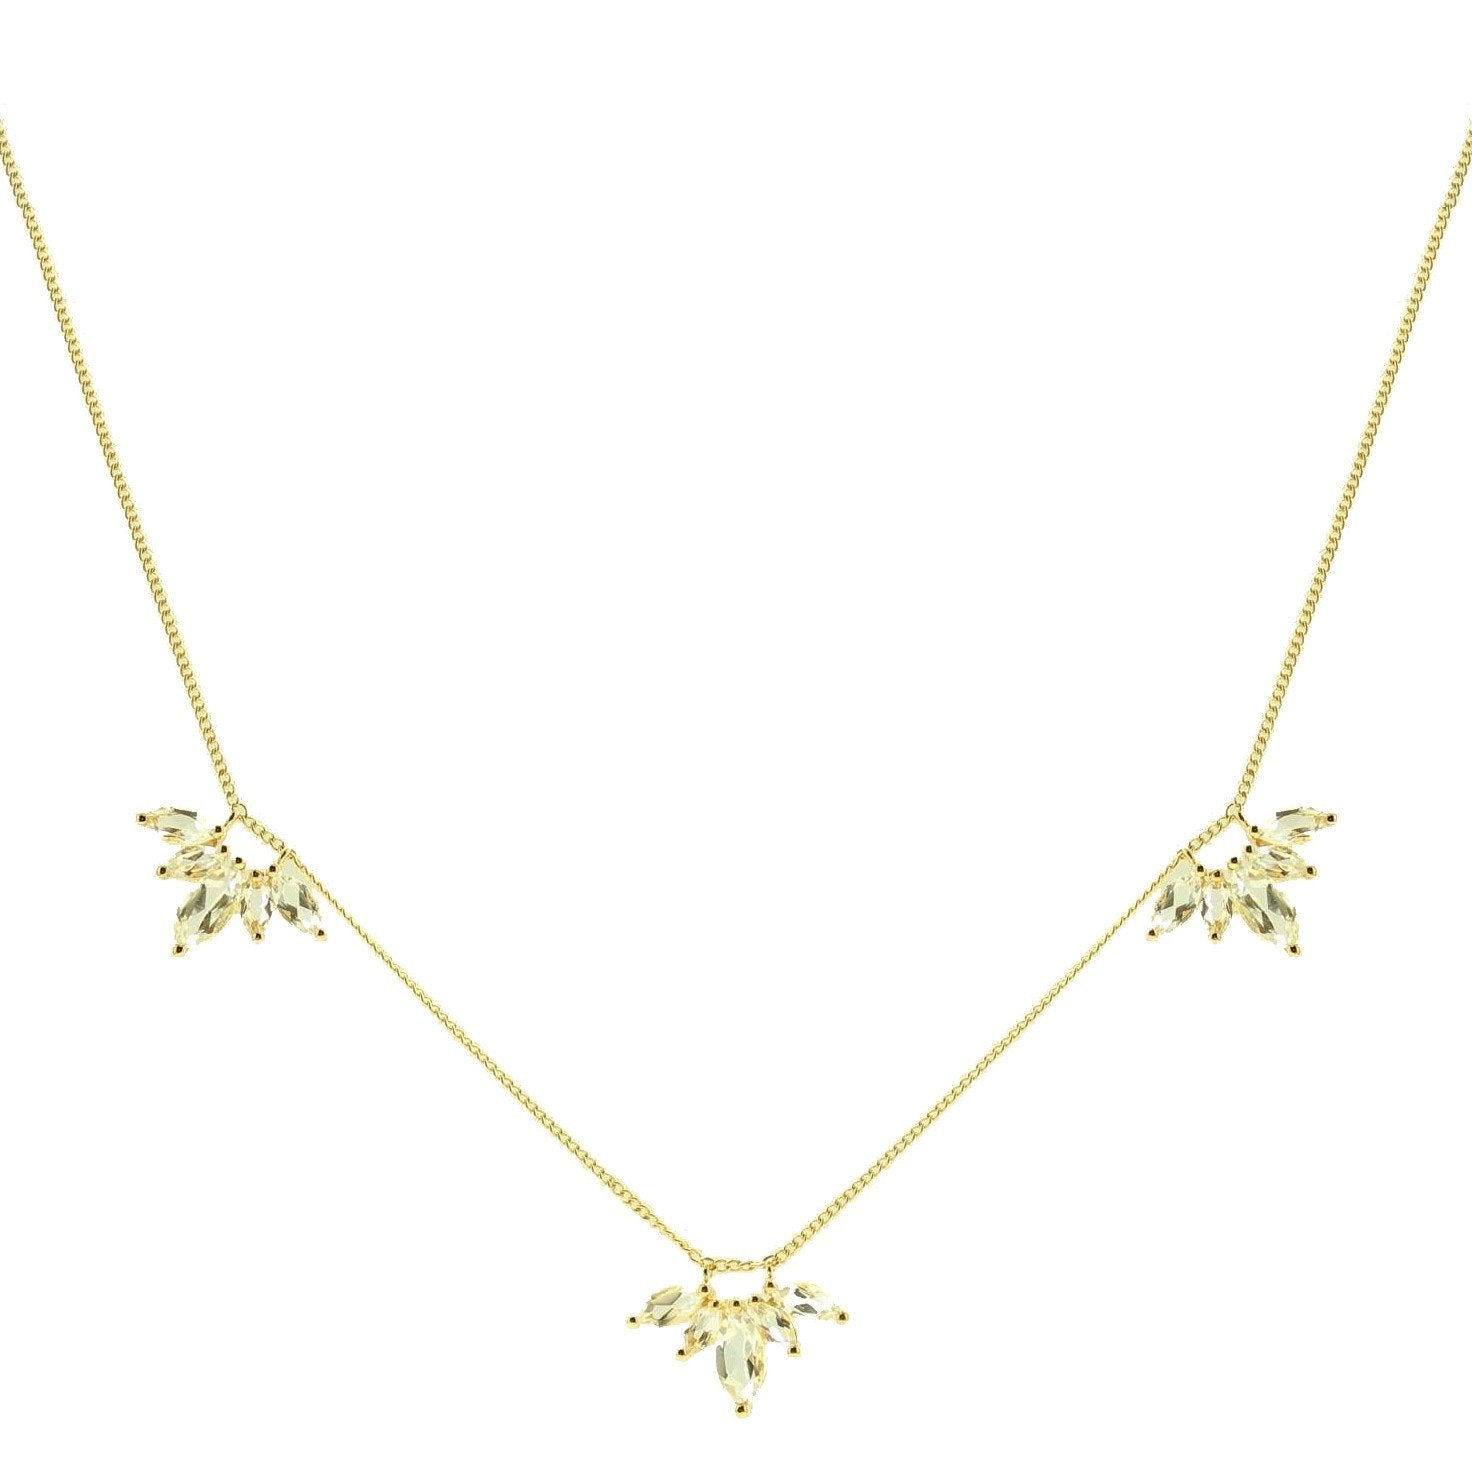 UNITY CROWN NECKLACE - WHITE TOPAZ & GOLD - SO PRETTY CARA COTTER